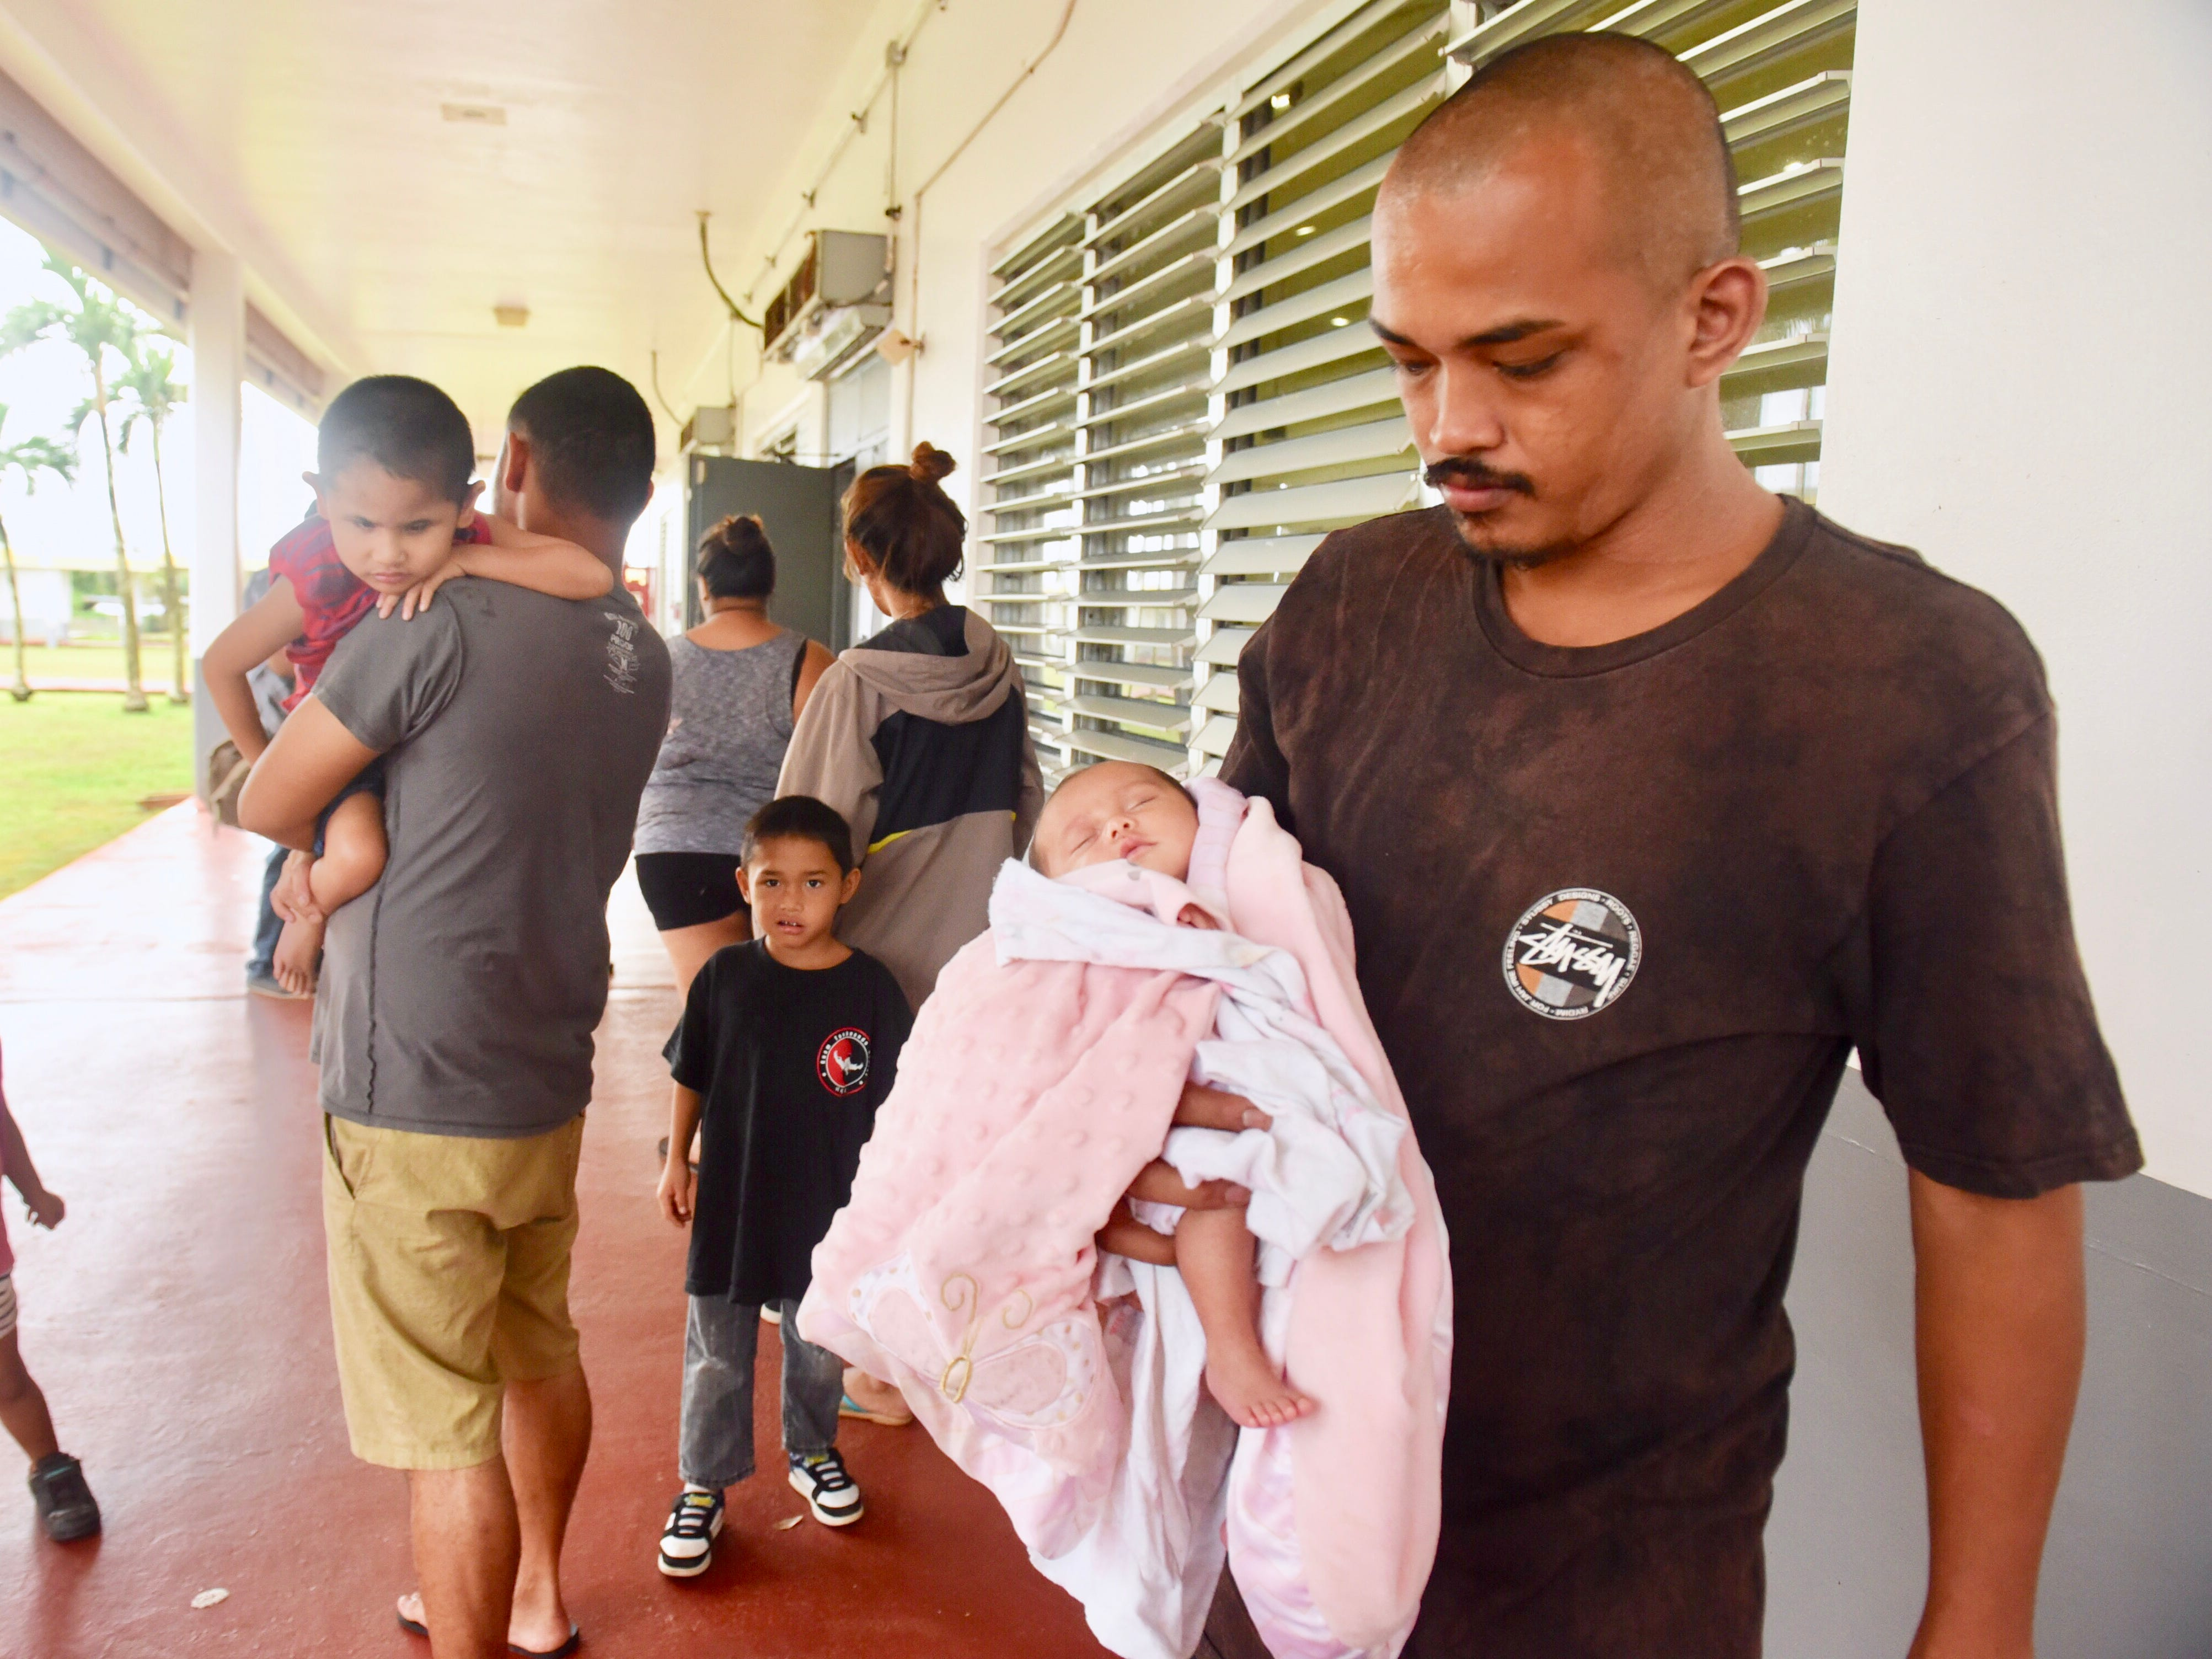 Jarrett Pangelinan Cruz carries his 1-month-old niece, Jayvery Pangelinan, as he gathers with family members in the hallway of Astumbo Elementary School in Dededo, where they were seeking shelter from Super Typhoon Yutu on Wednesday, Oct. 24, 2018. Eight public schools were opened as shelters at 2 p.m. Wednesday, two hours after Condition of Readiness 2 was declared for the typhoon.